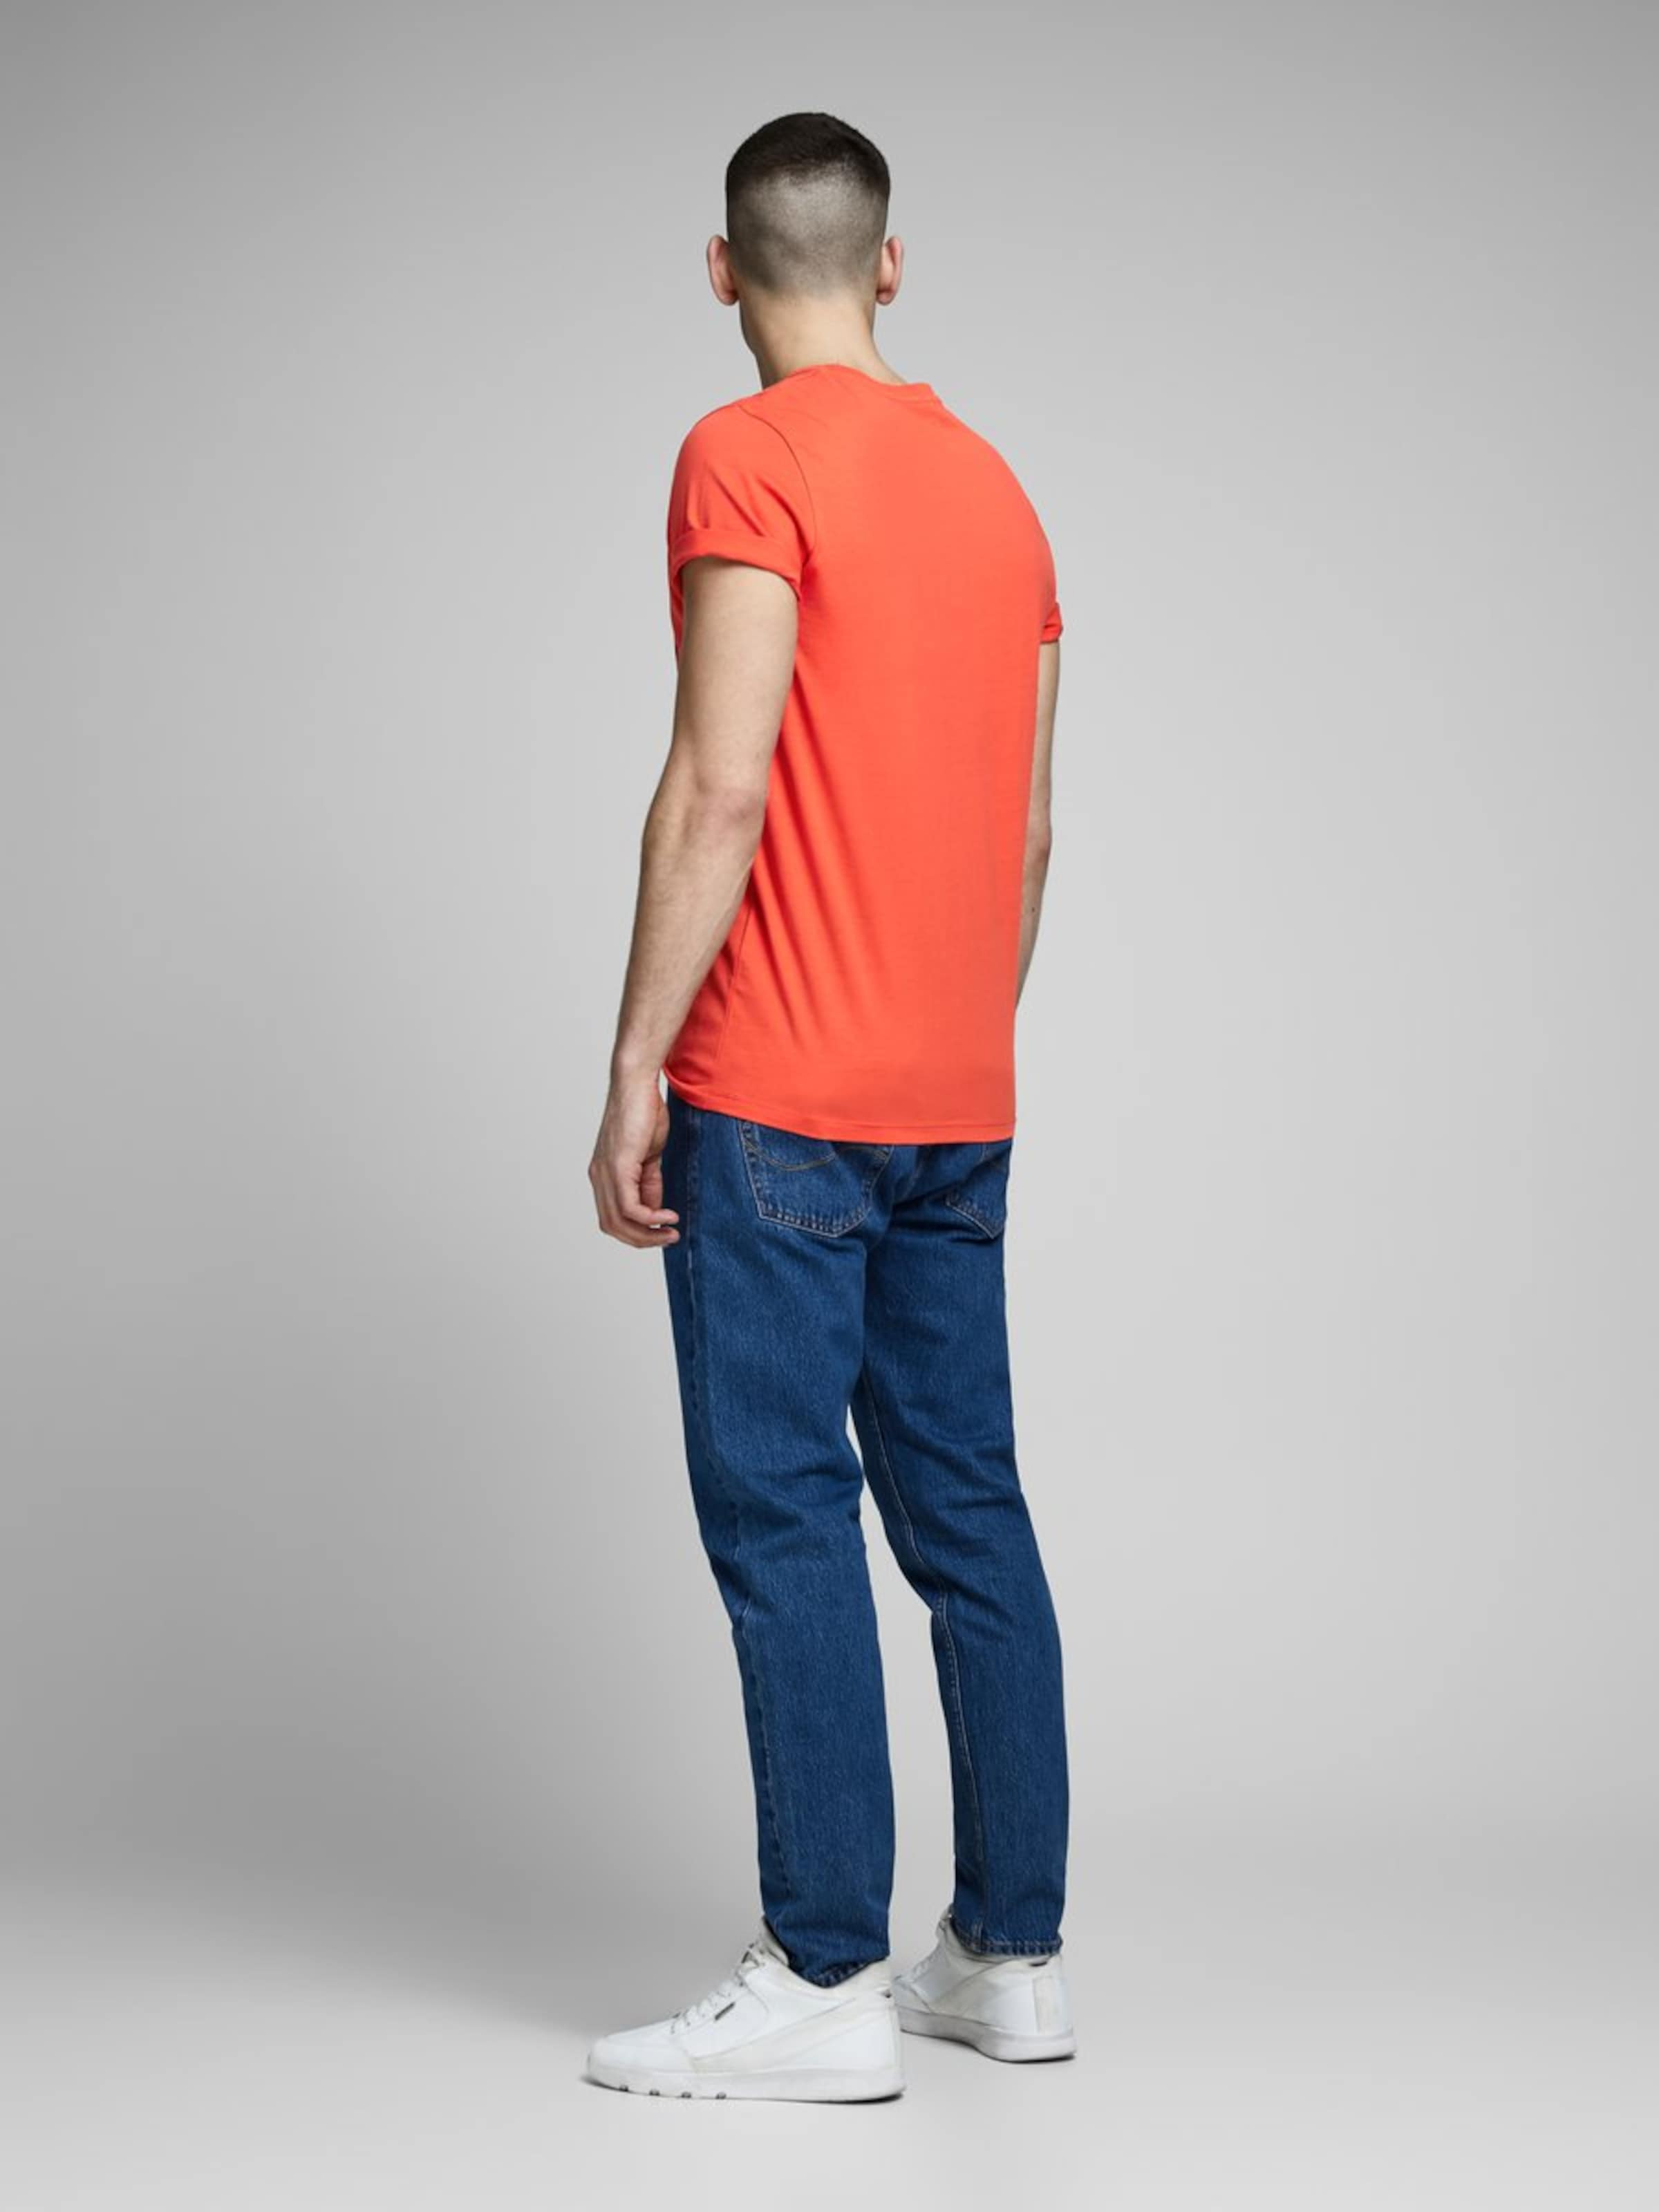 Foncé shirt Orange Jackamp; T En Jones w0N8mn